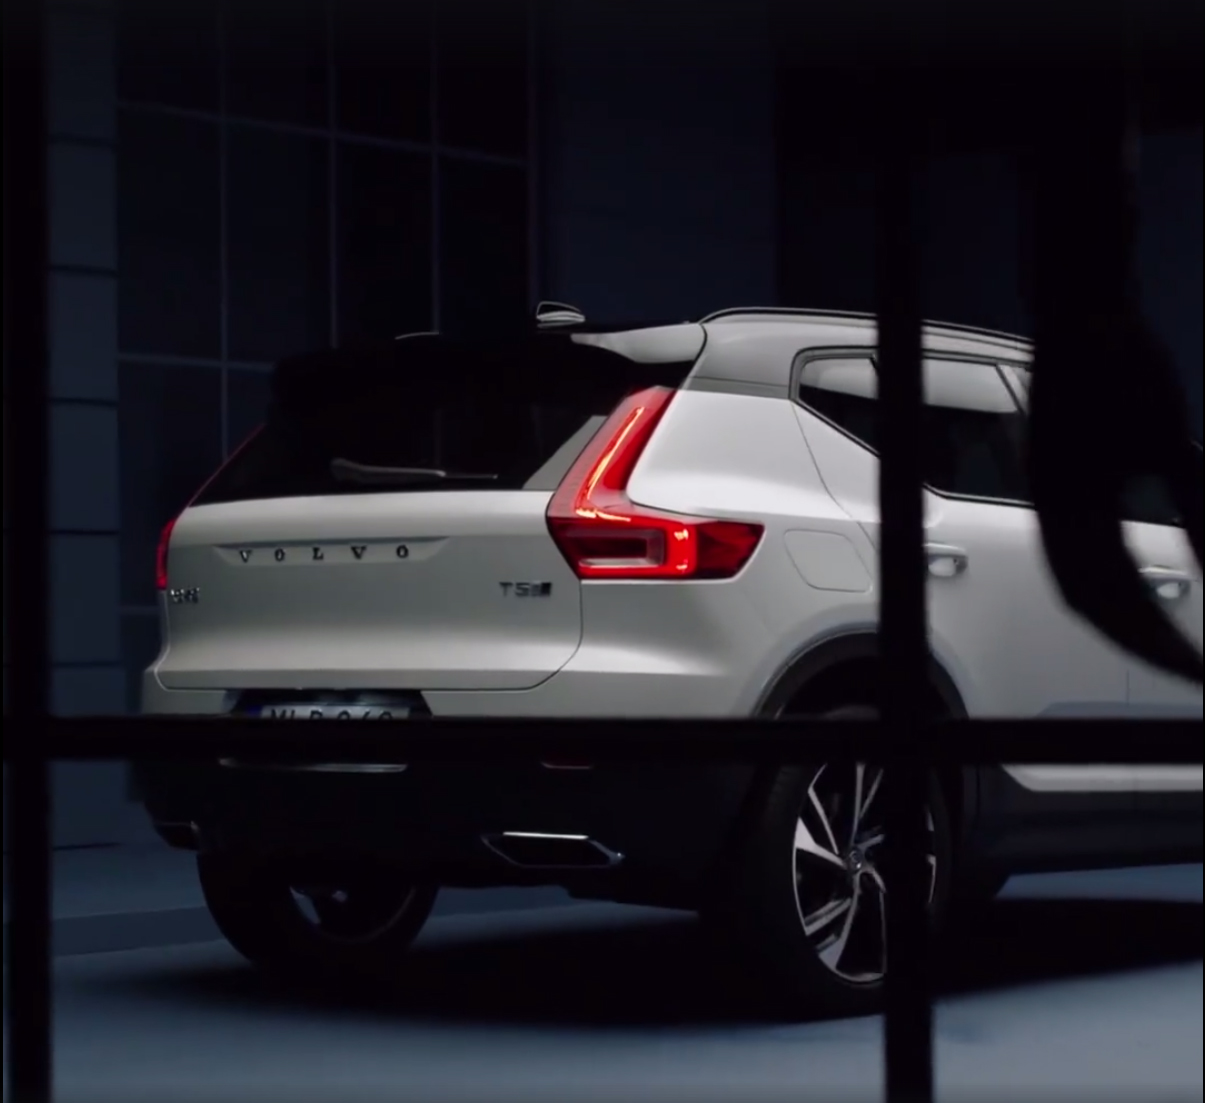 volvo accidentally reveals 2018 xc40 suv carscoops. Black Bedroom Furniture Sets. Home Design Ideas